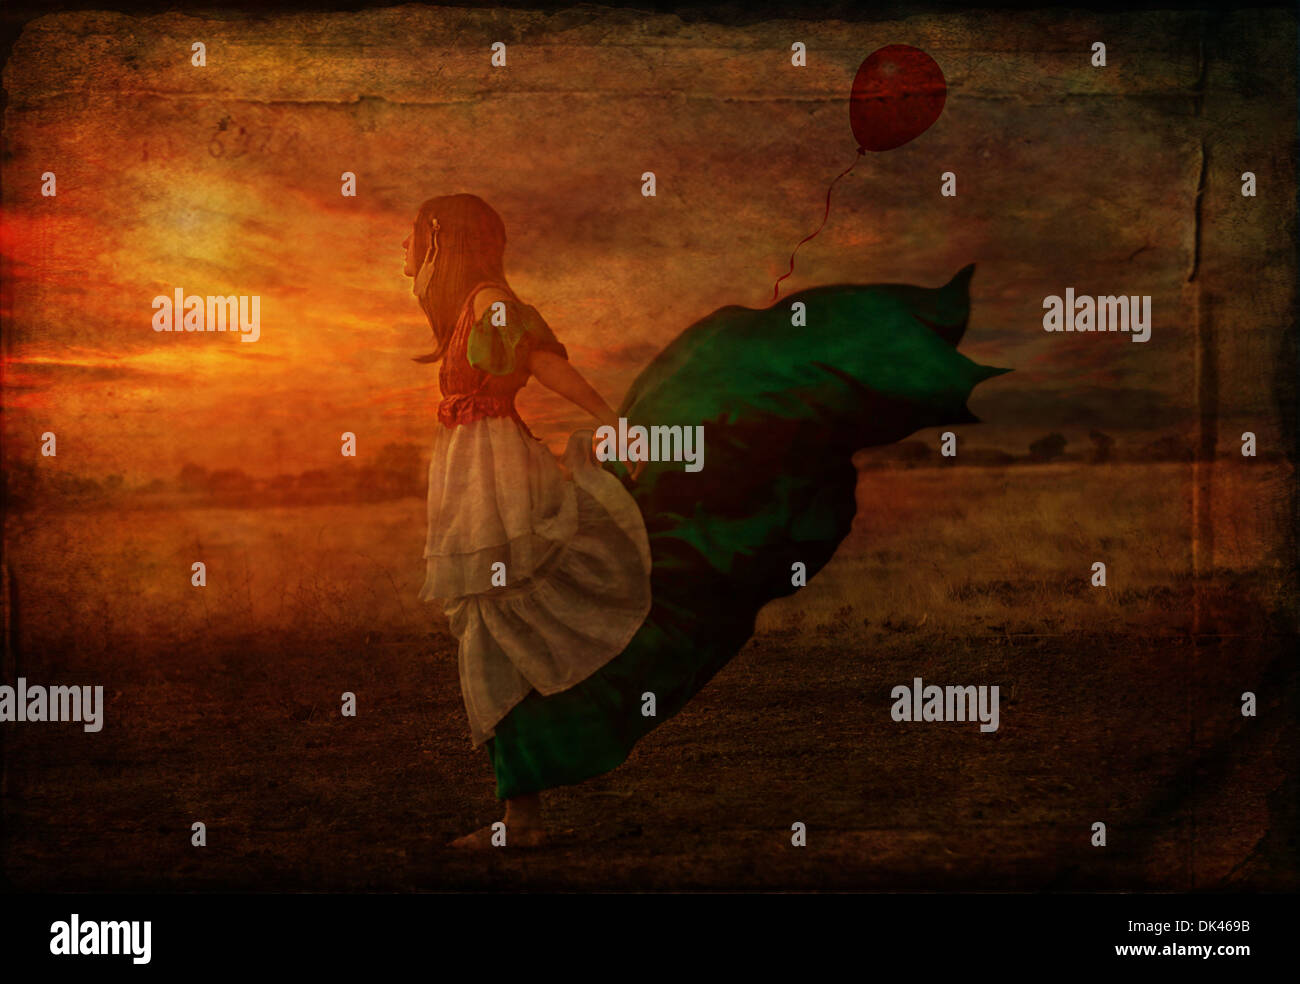 Girl with red balloon long dress blowing in the wind - Stock Image